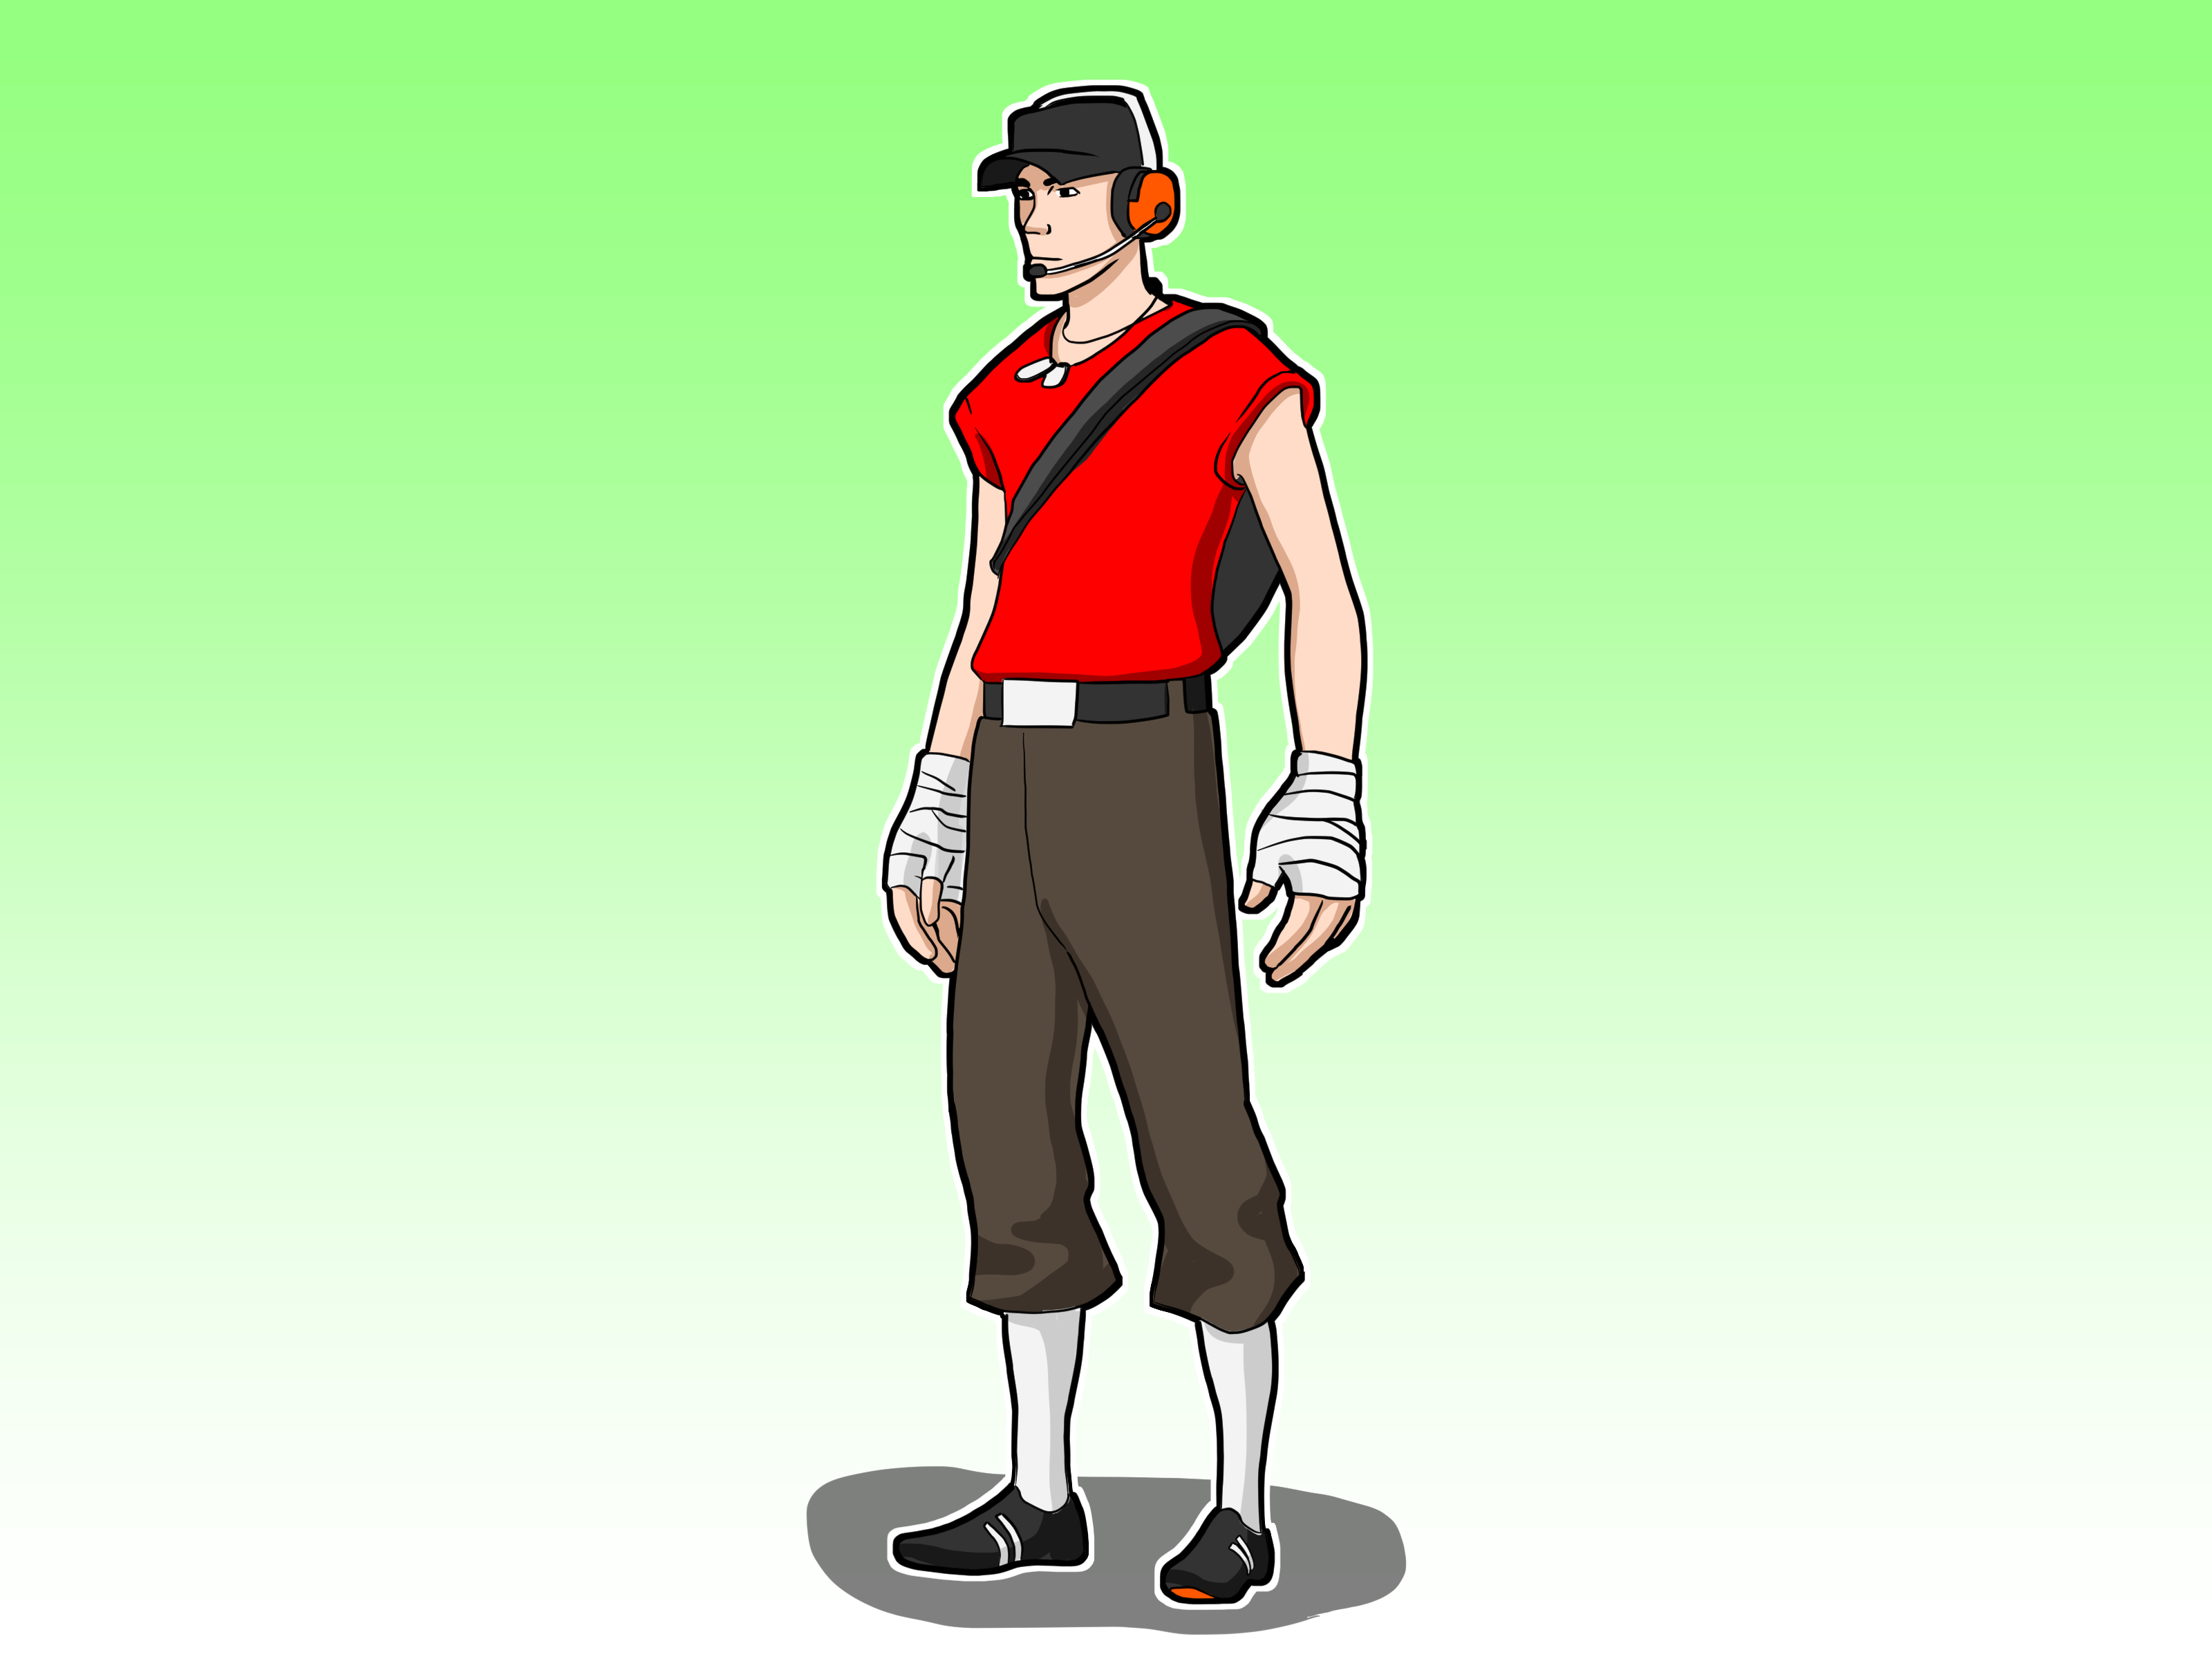 Team Fortress 2 clipart #10, Download drawings